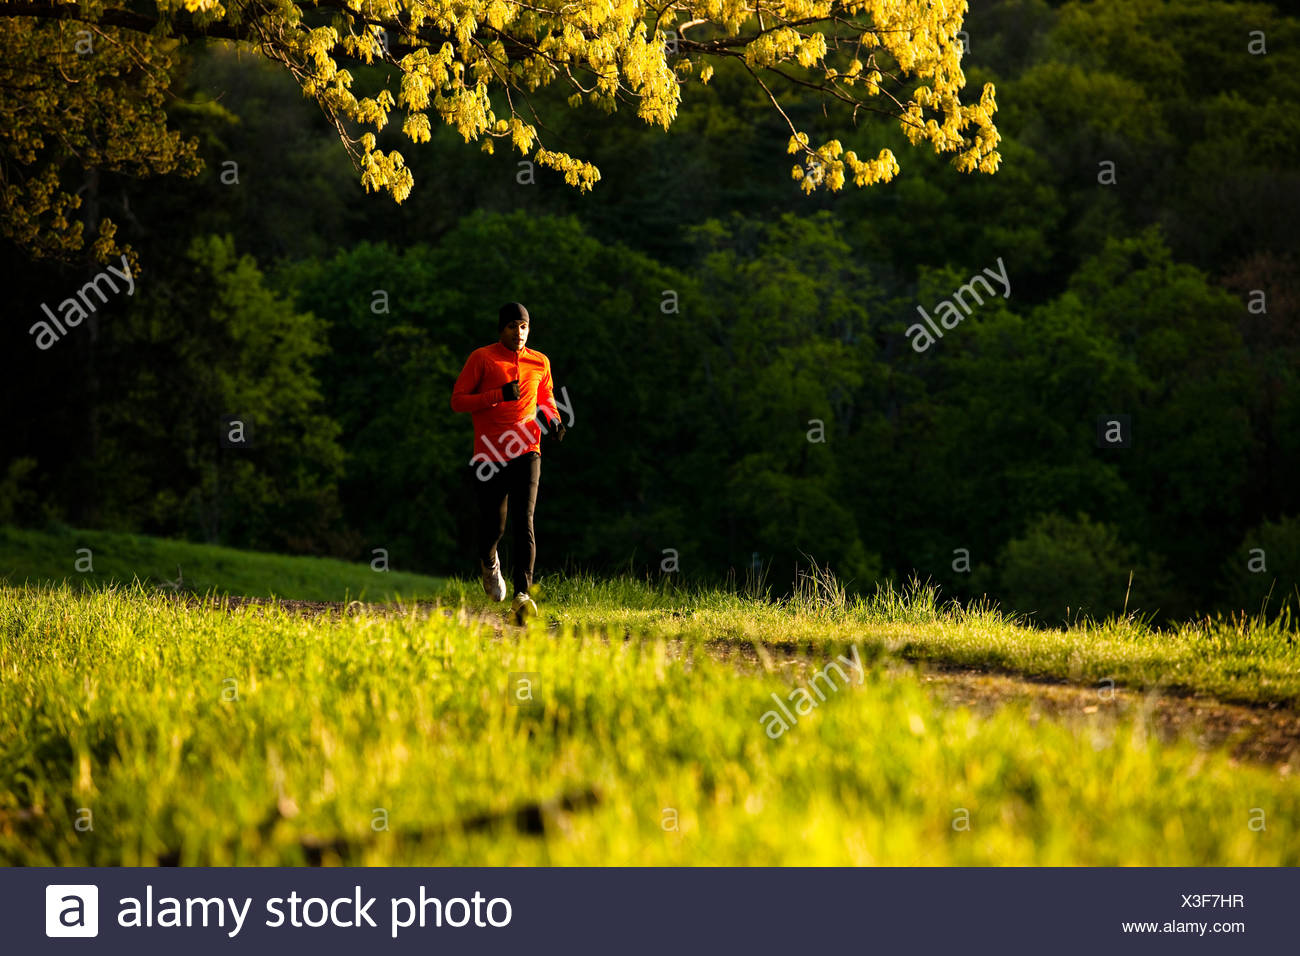 A man wearing an orange shirt runs along a trail in Rockefeller State Park in Sleepy Hollow, New York. - Stock Image